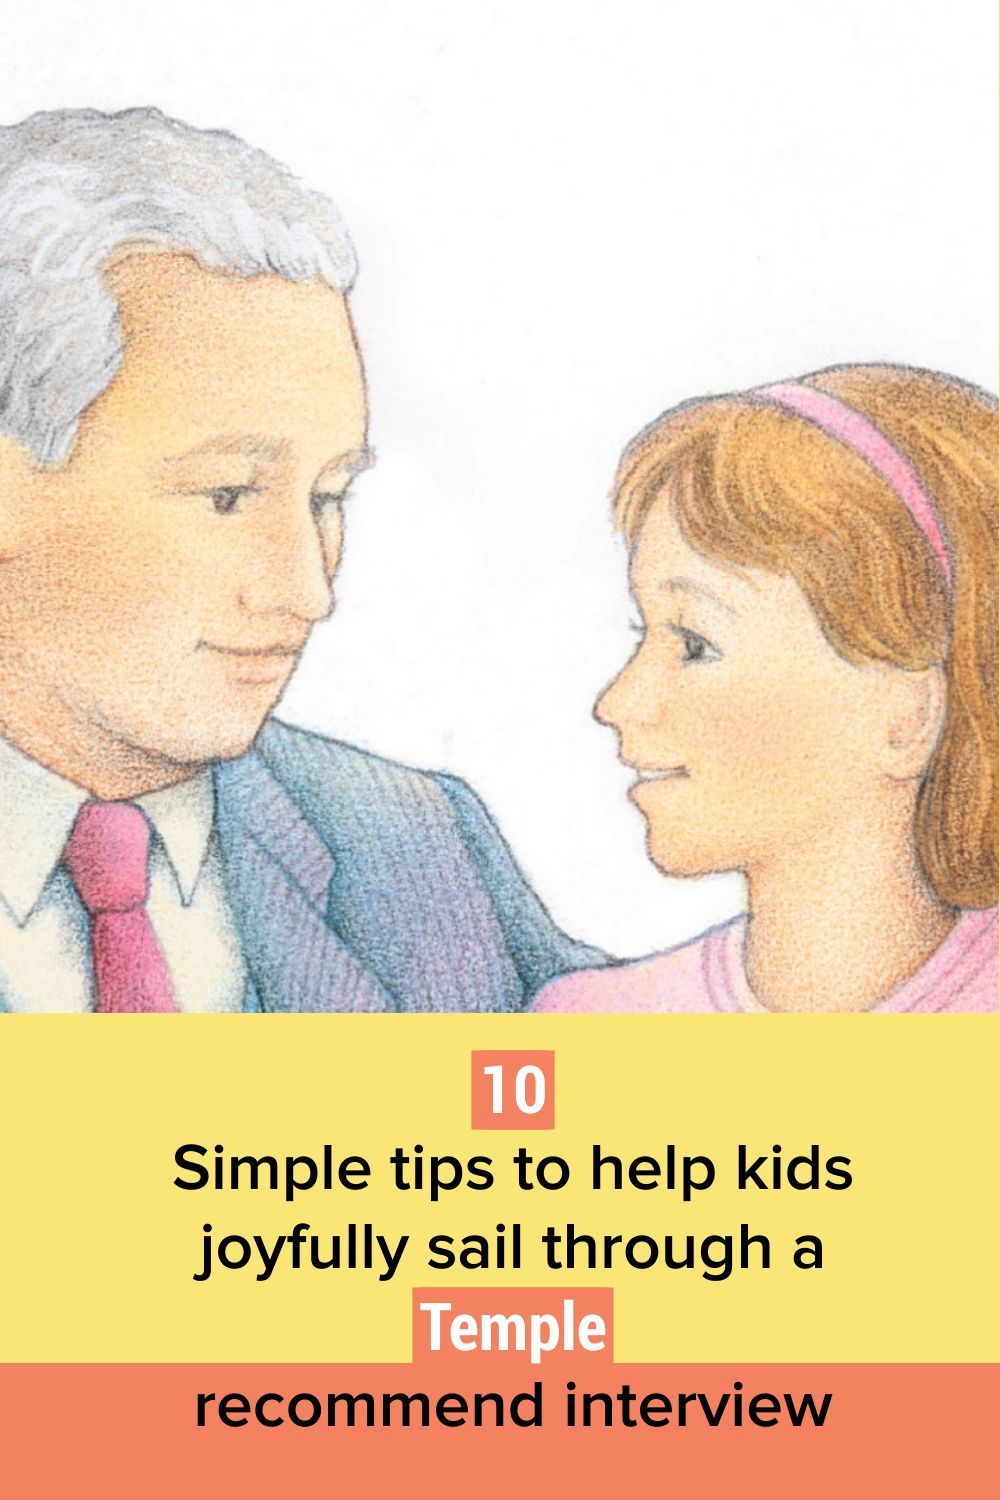 10 simple tips to help kids joyfully sail through a Temple recommend interview